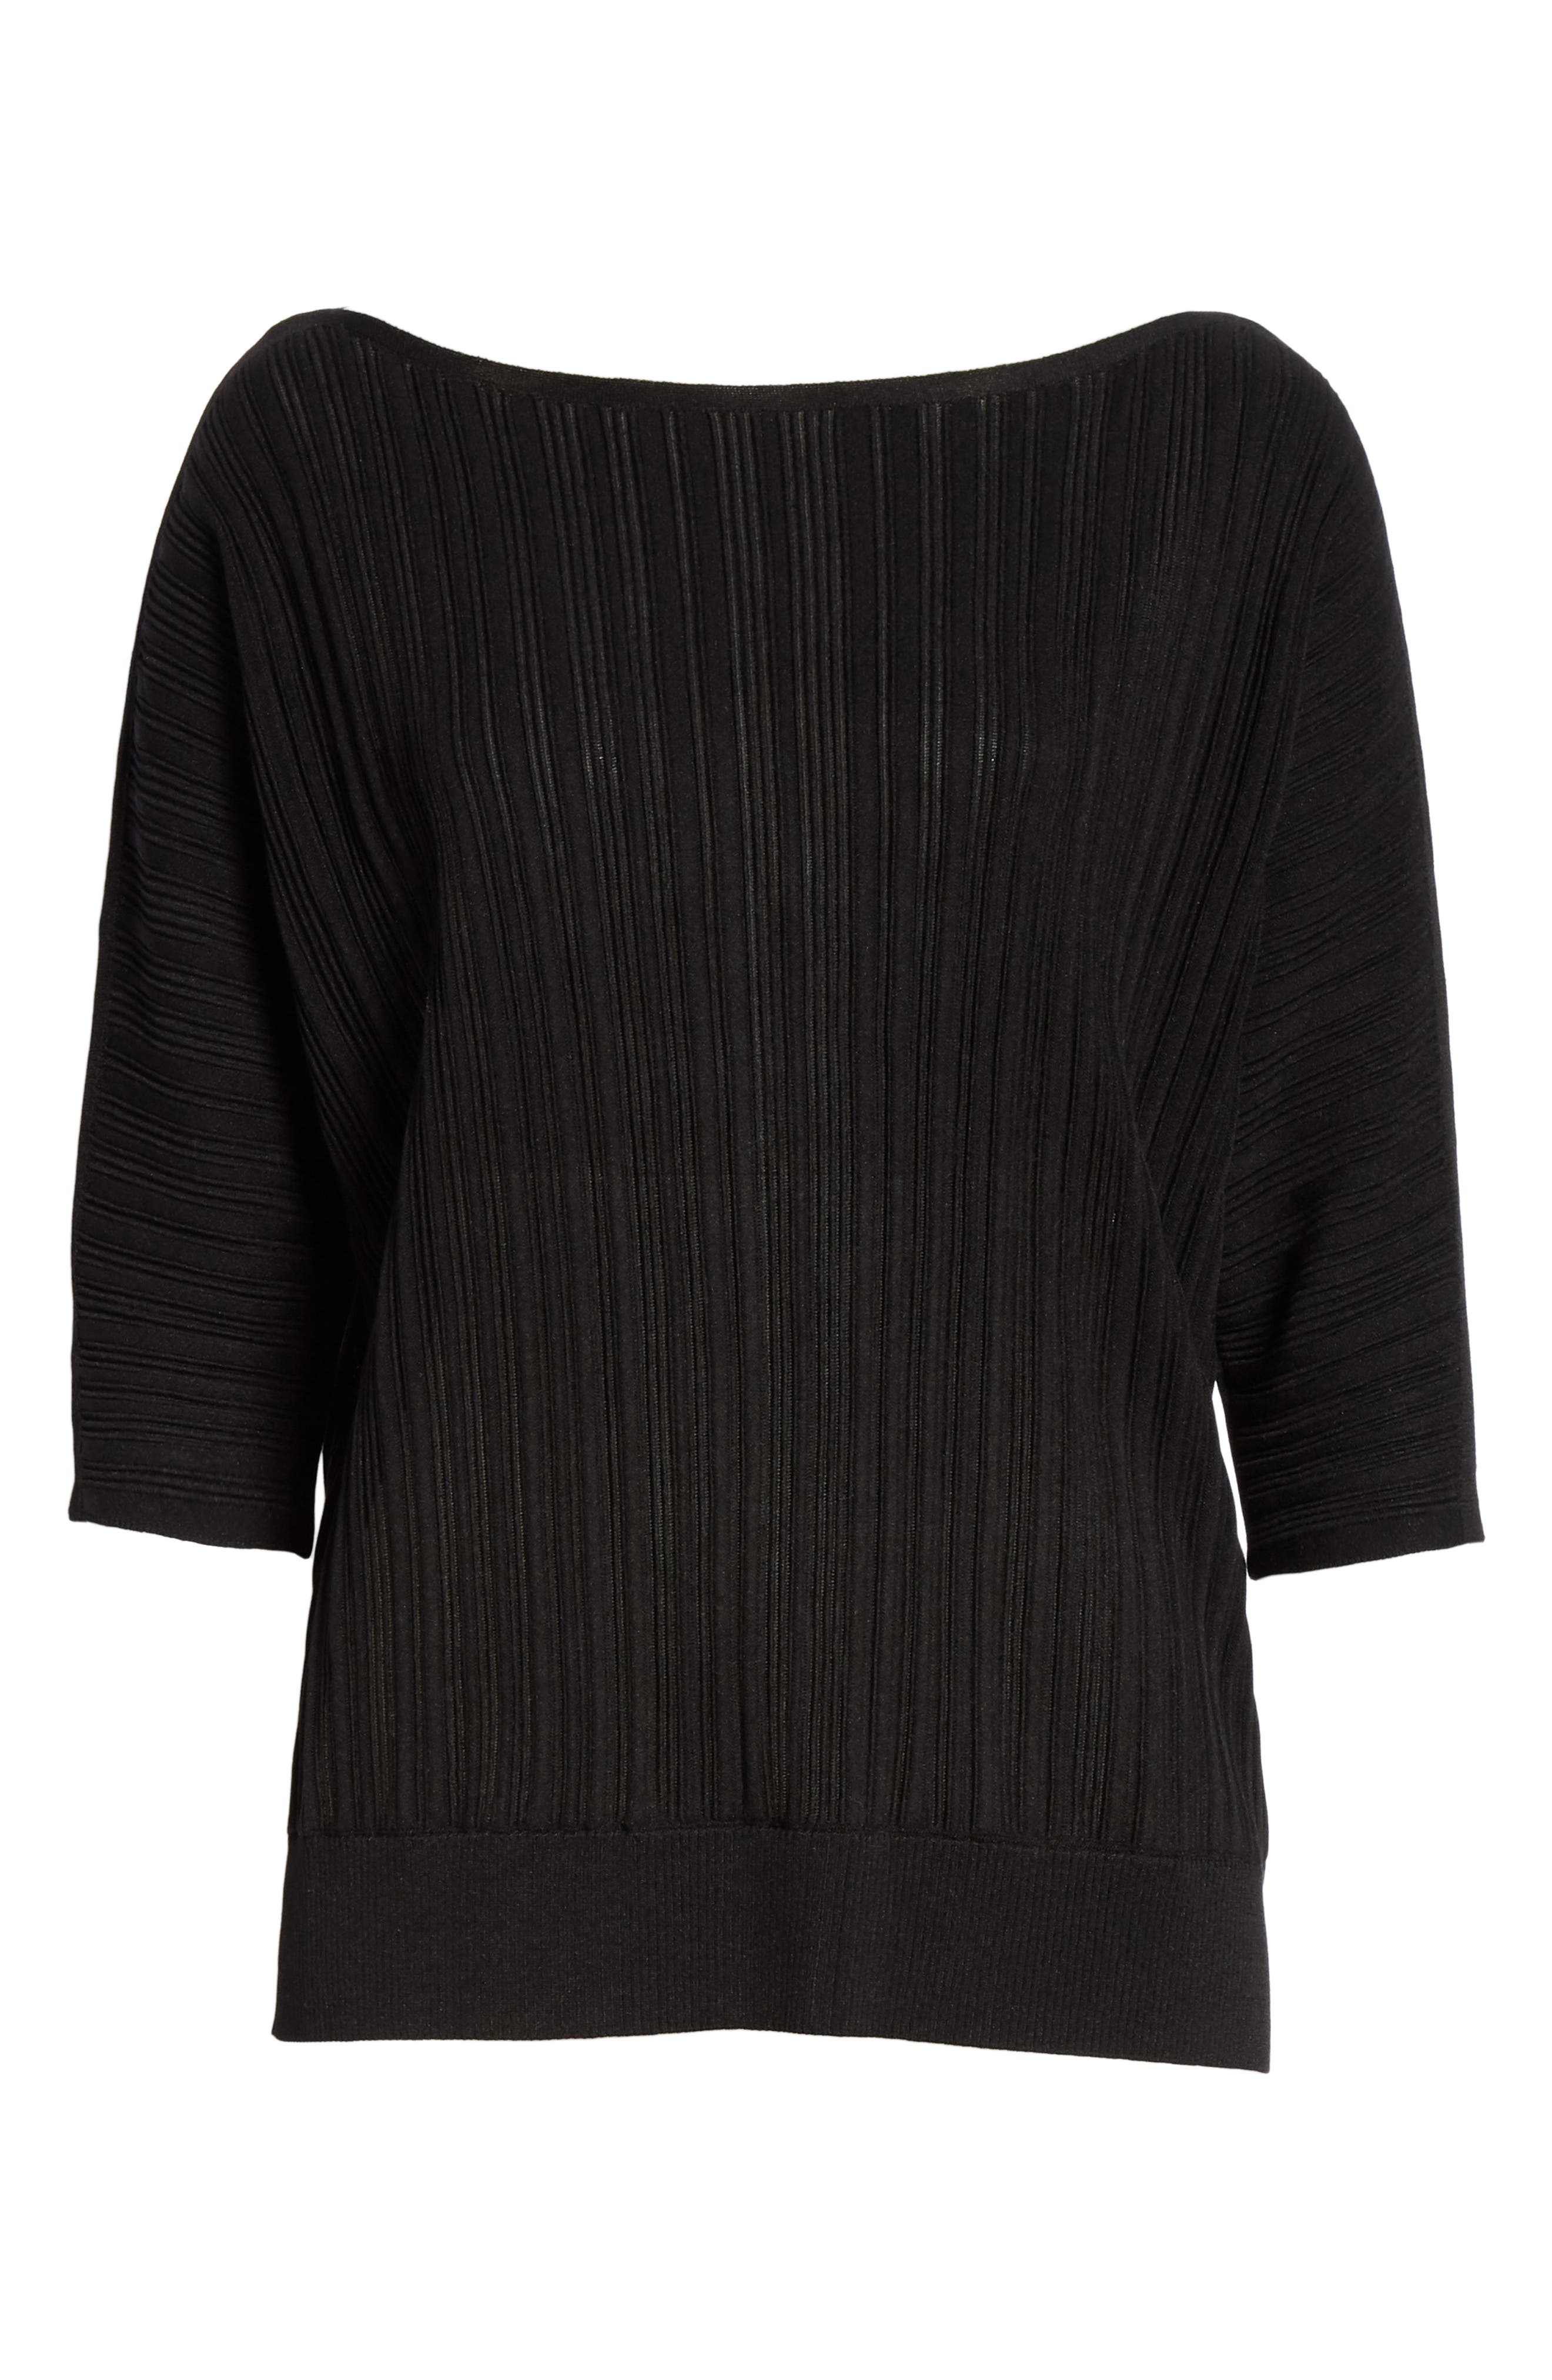 LAFAYETTE 148 NEW YORK, Plissé Ribbed Dolman Sweater, Alternate thumbnail 6, color, BLACK